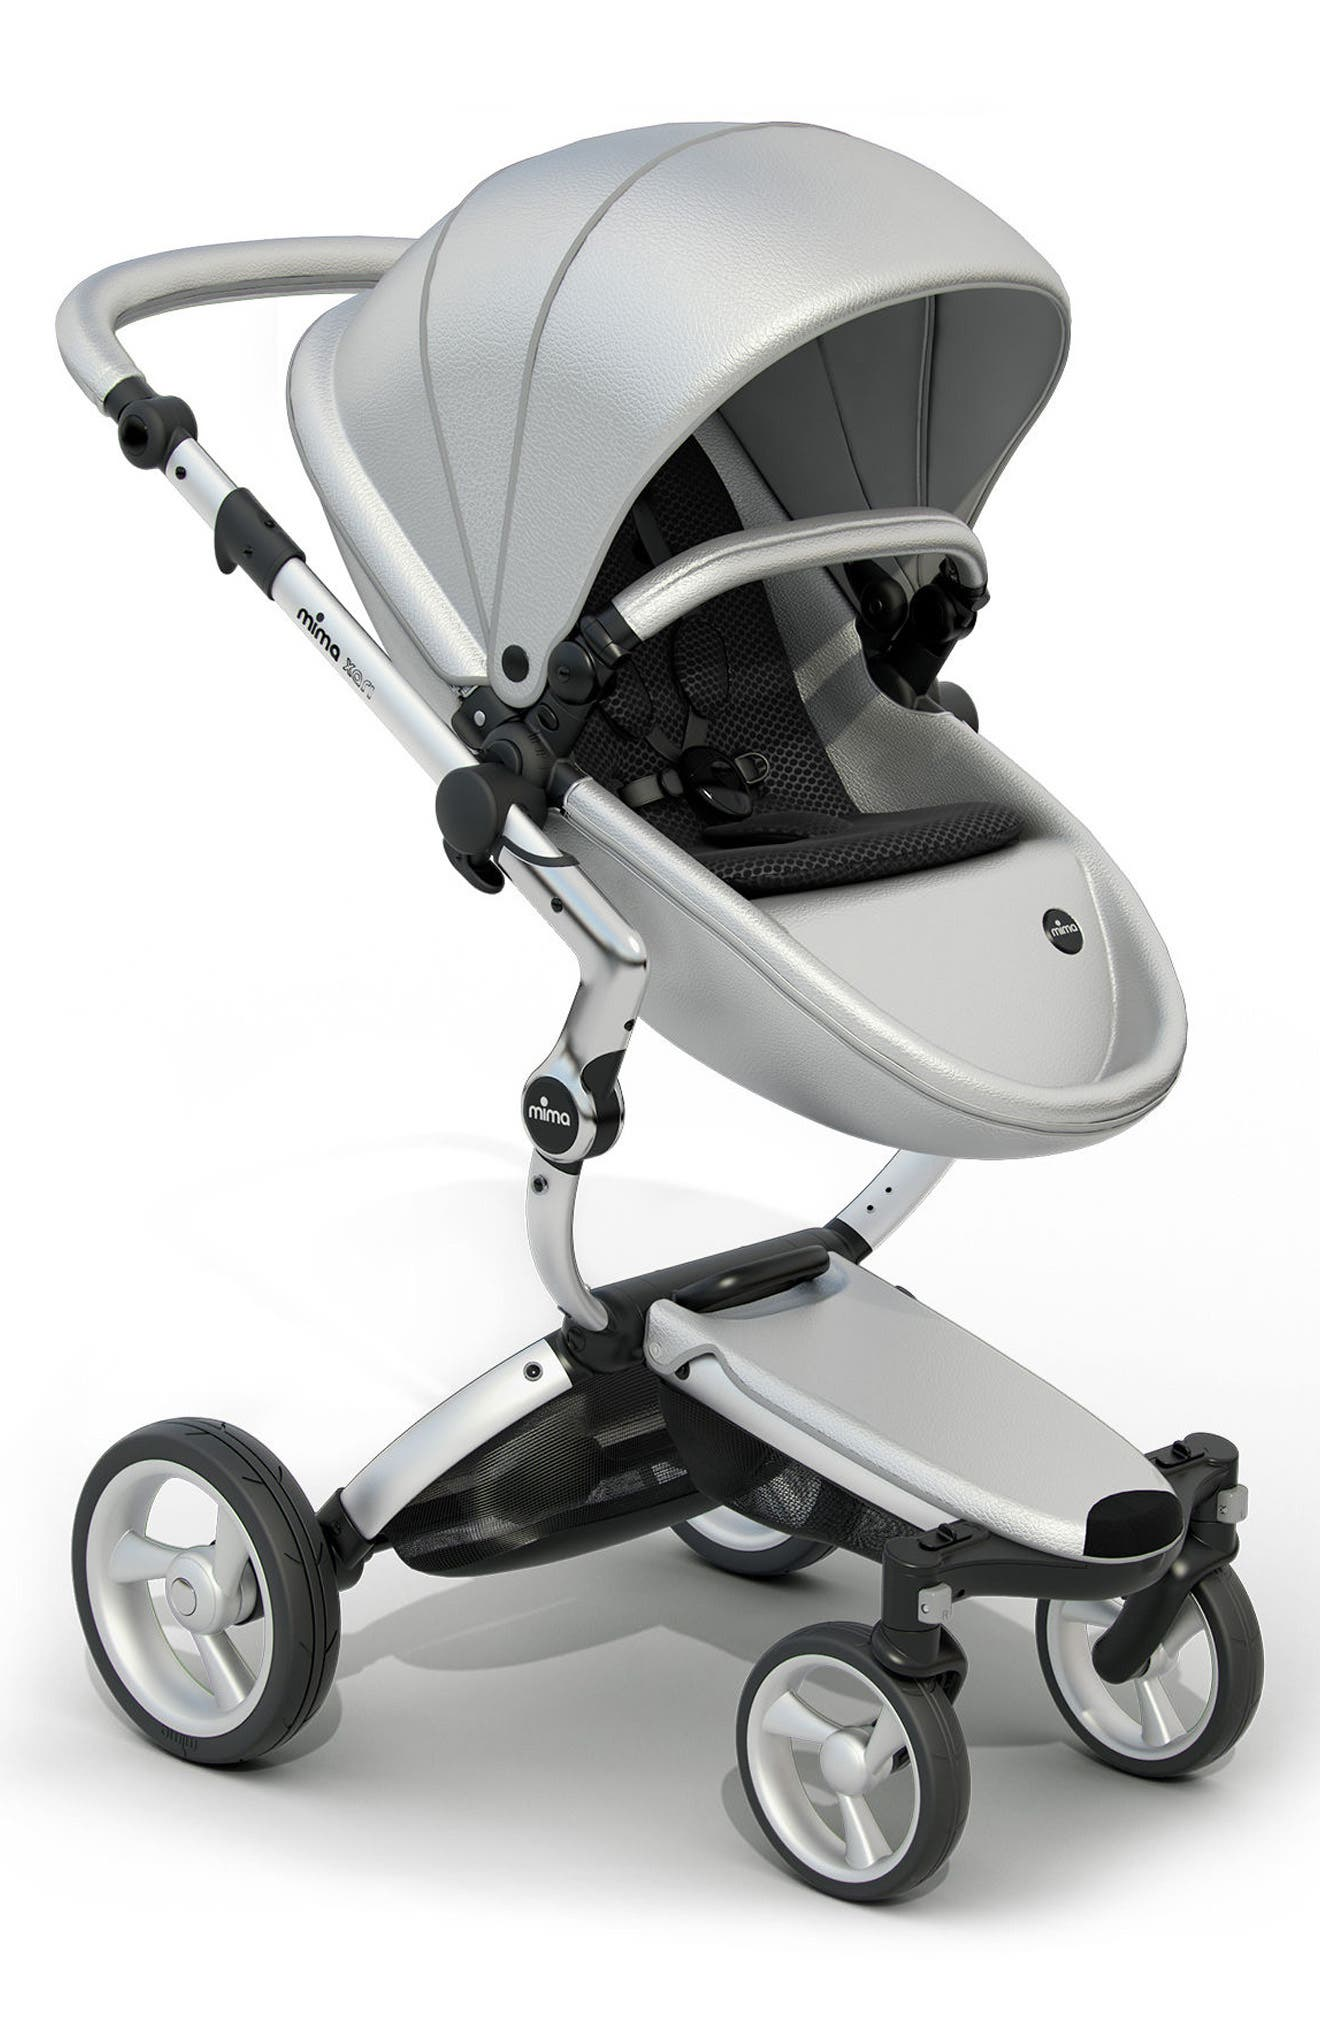 Xari Aluminum Chassis Stroller with Reversible Reclining Seat & Carrycot,                         Main,                         color, ARGENTO / BLACK